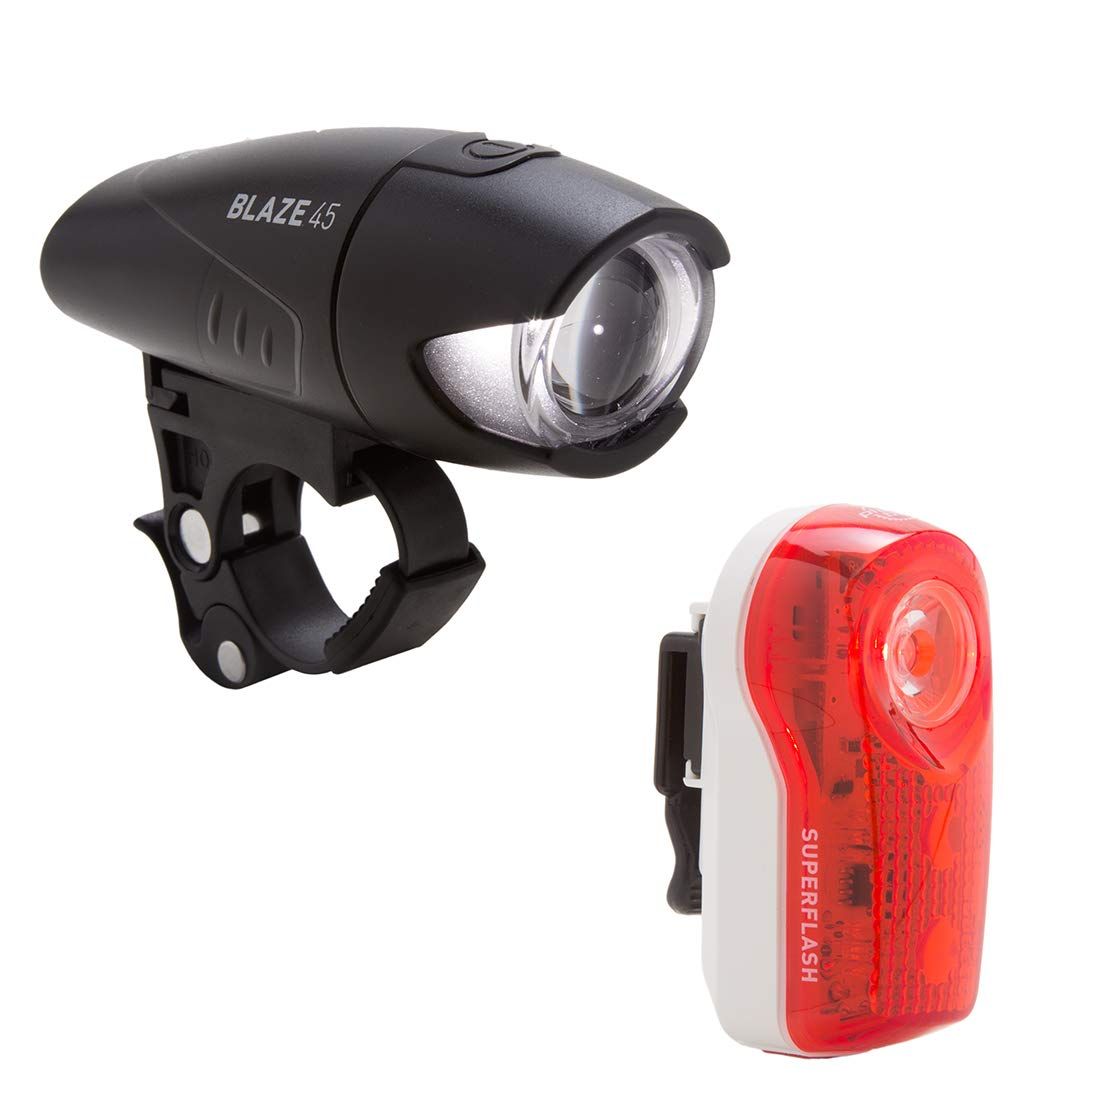 Blaze 45 & Superflash light  set